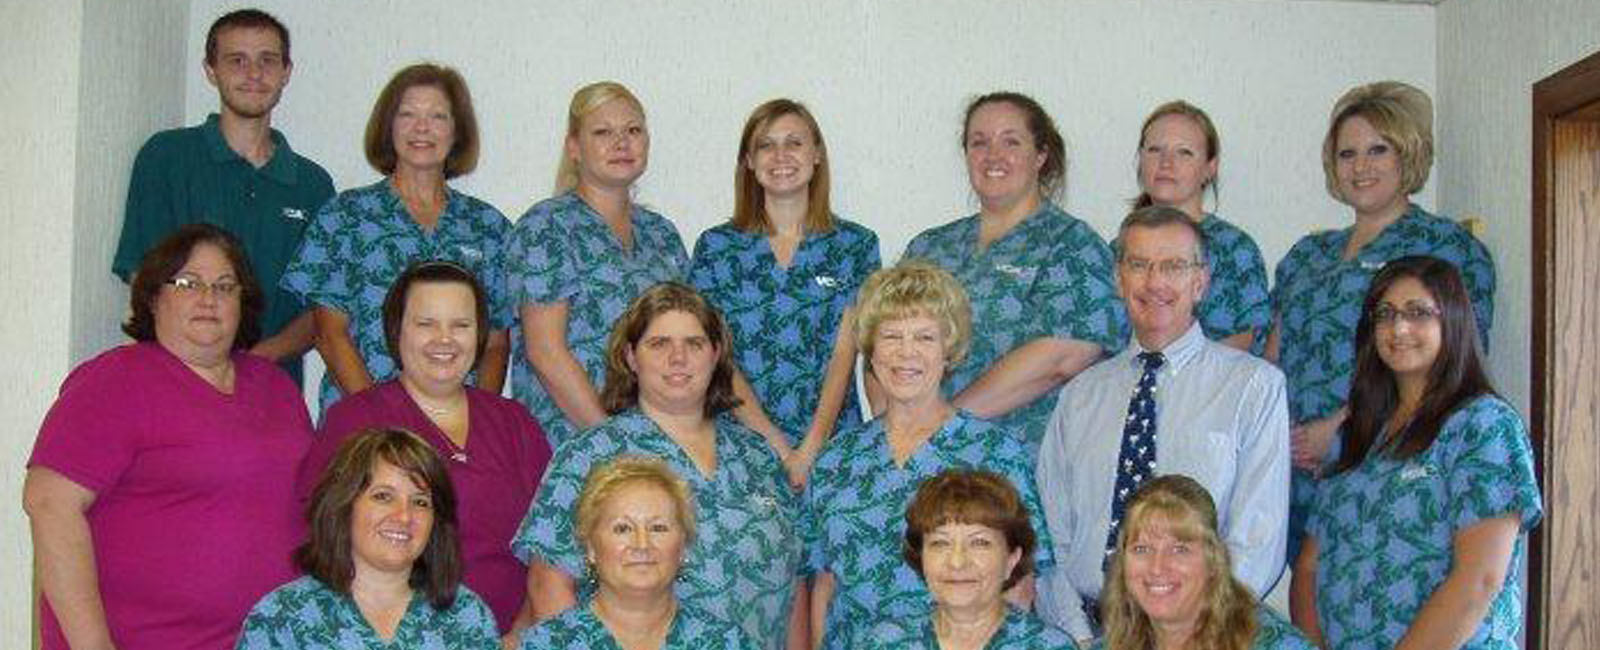 Homepage Team Picture of VCA Associates In Pet Care Animal Hospital